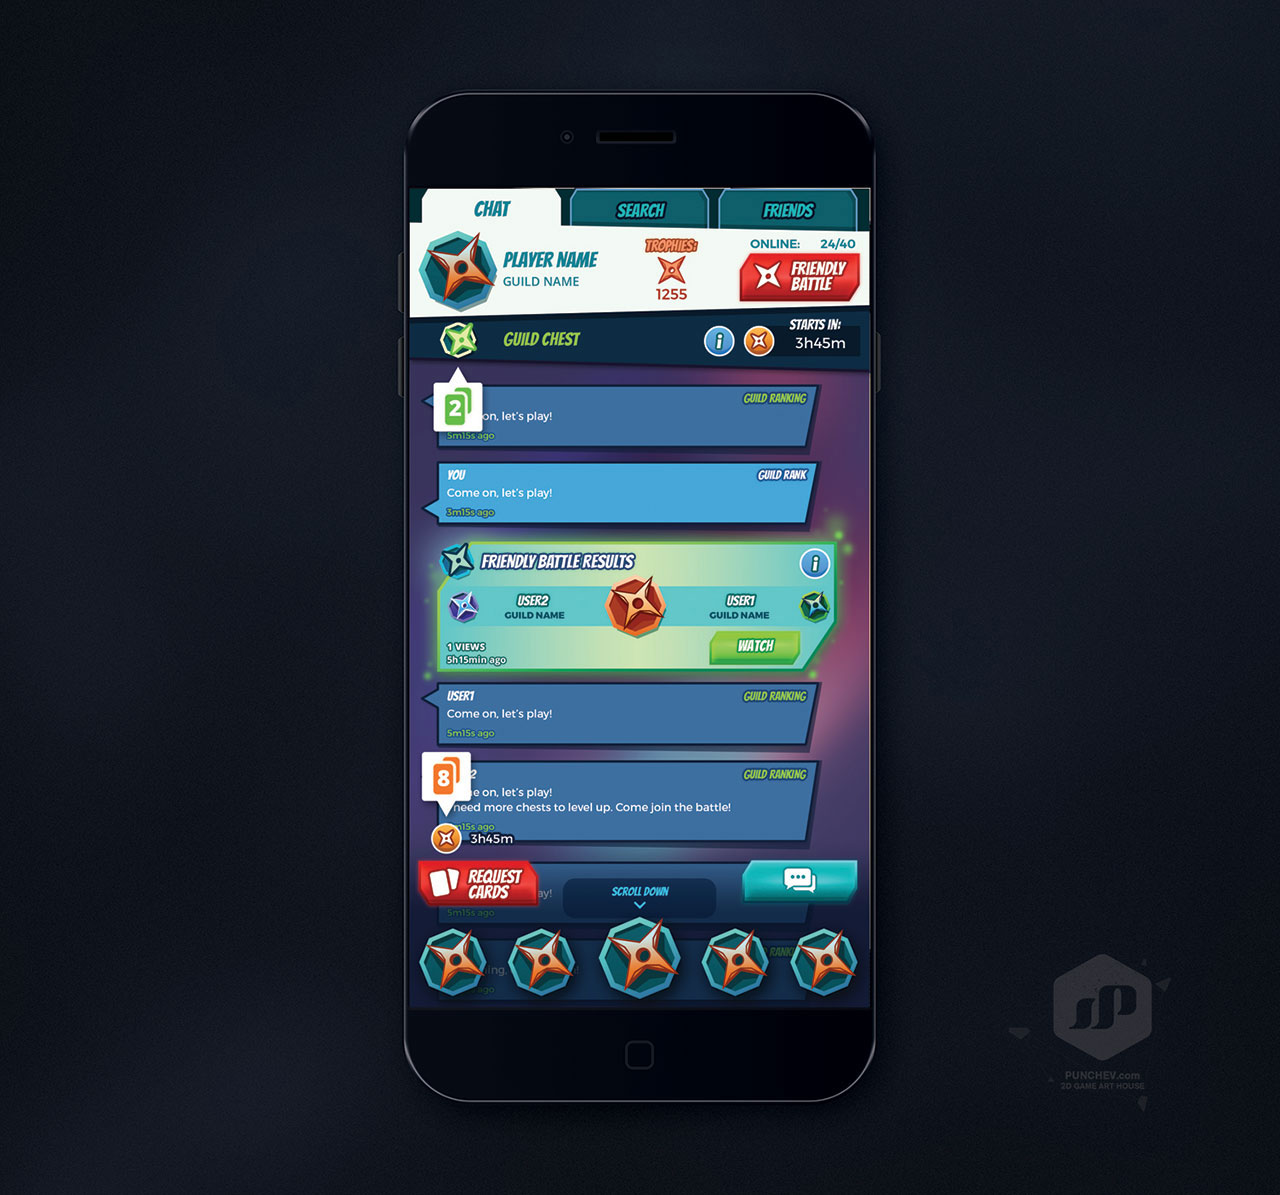 mobile-game-interface-design-ui-ux-concept-gameart-gameinterface-screen-previewC